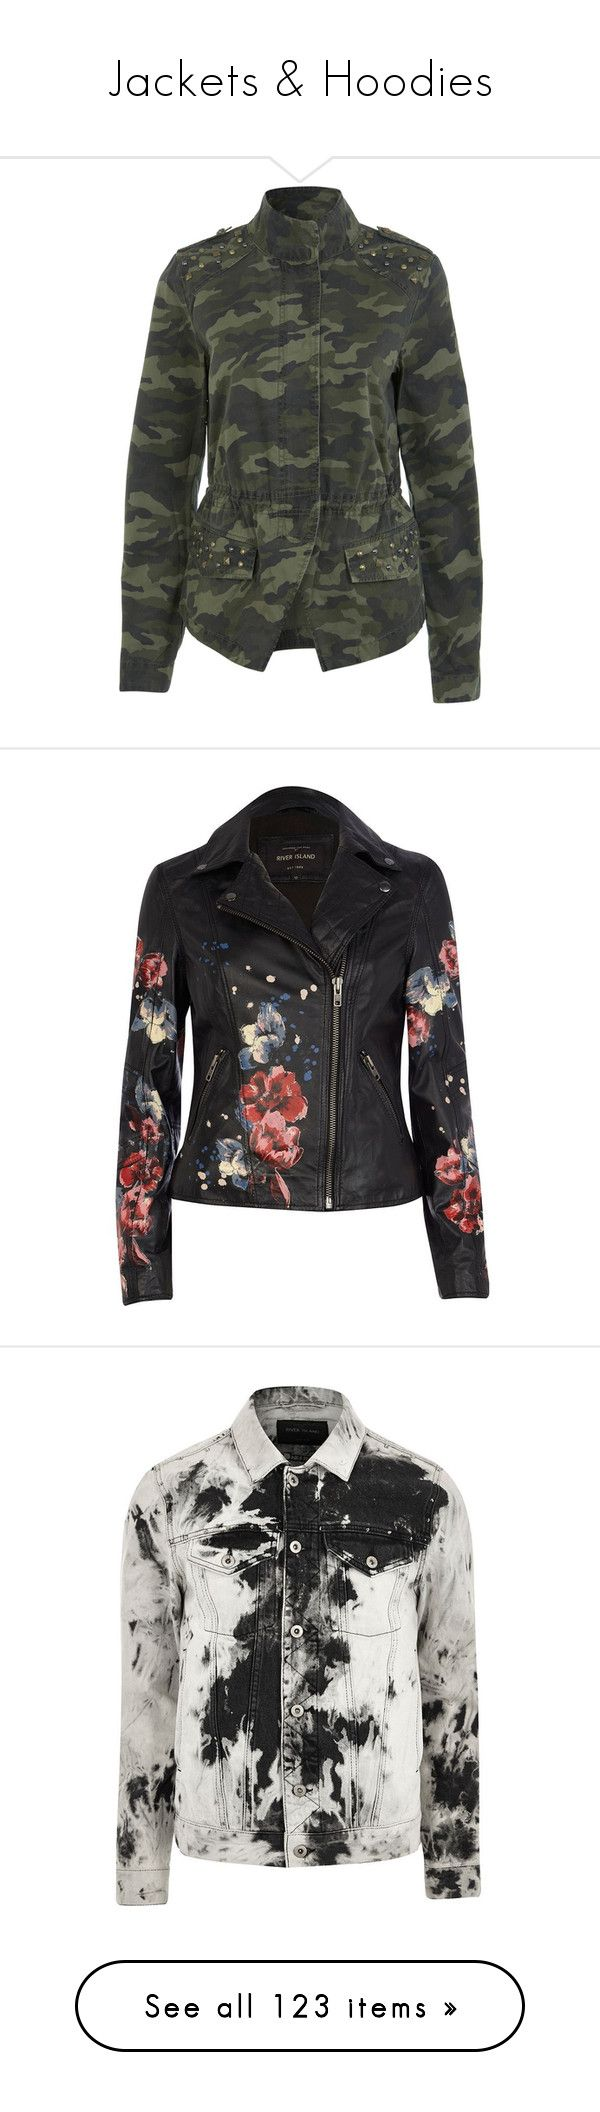 """""""Jackets & Hoodies"""" by itsbarringerbabe ❤ liked on Polyvore featuring outerwear, jackets, coats, tops, casacos, assorted, camo jackets, camouflage jacket, cotton jacket and camo print jacket"""